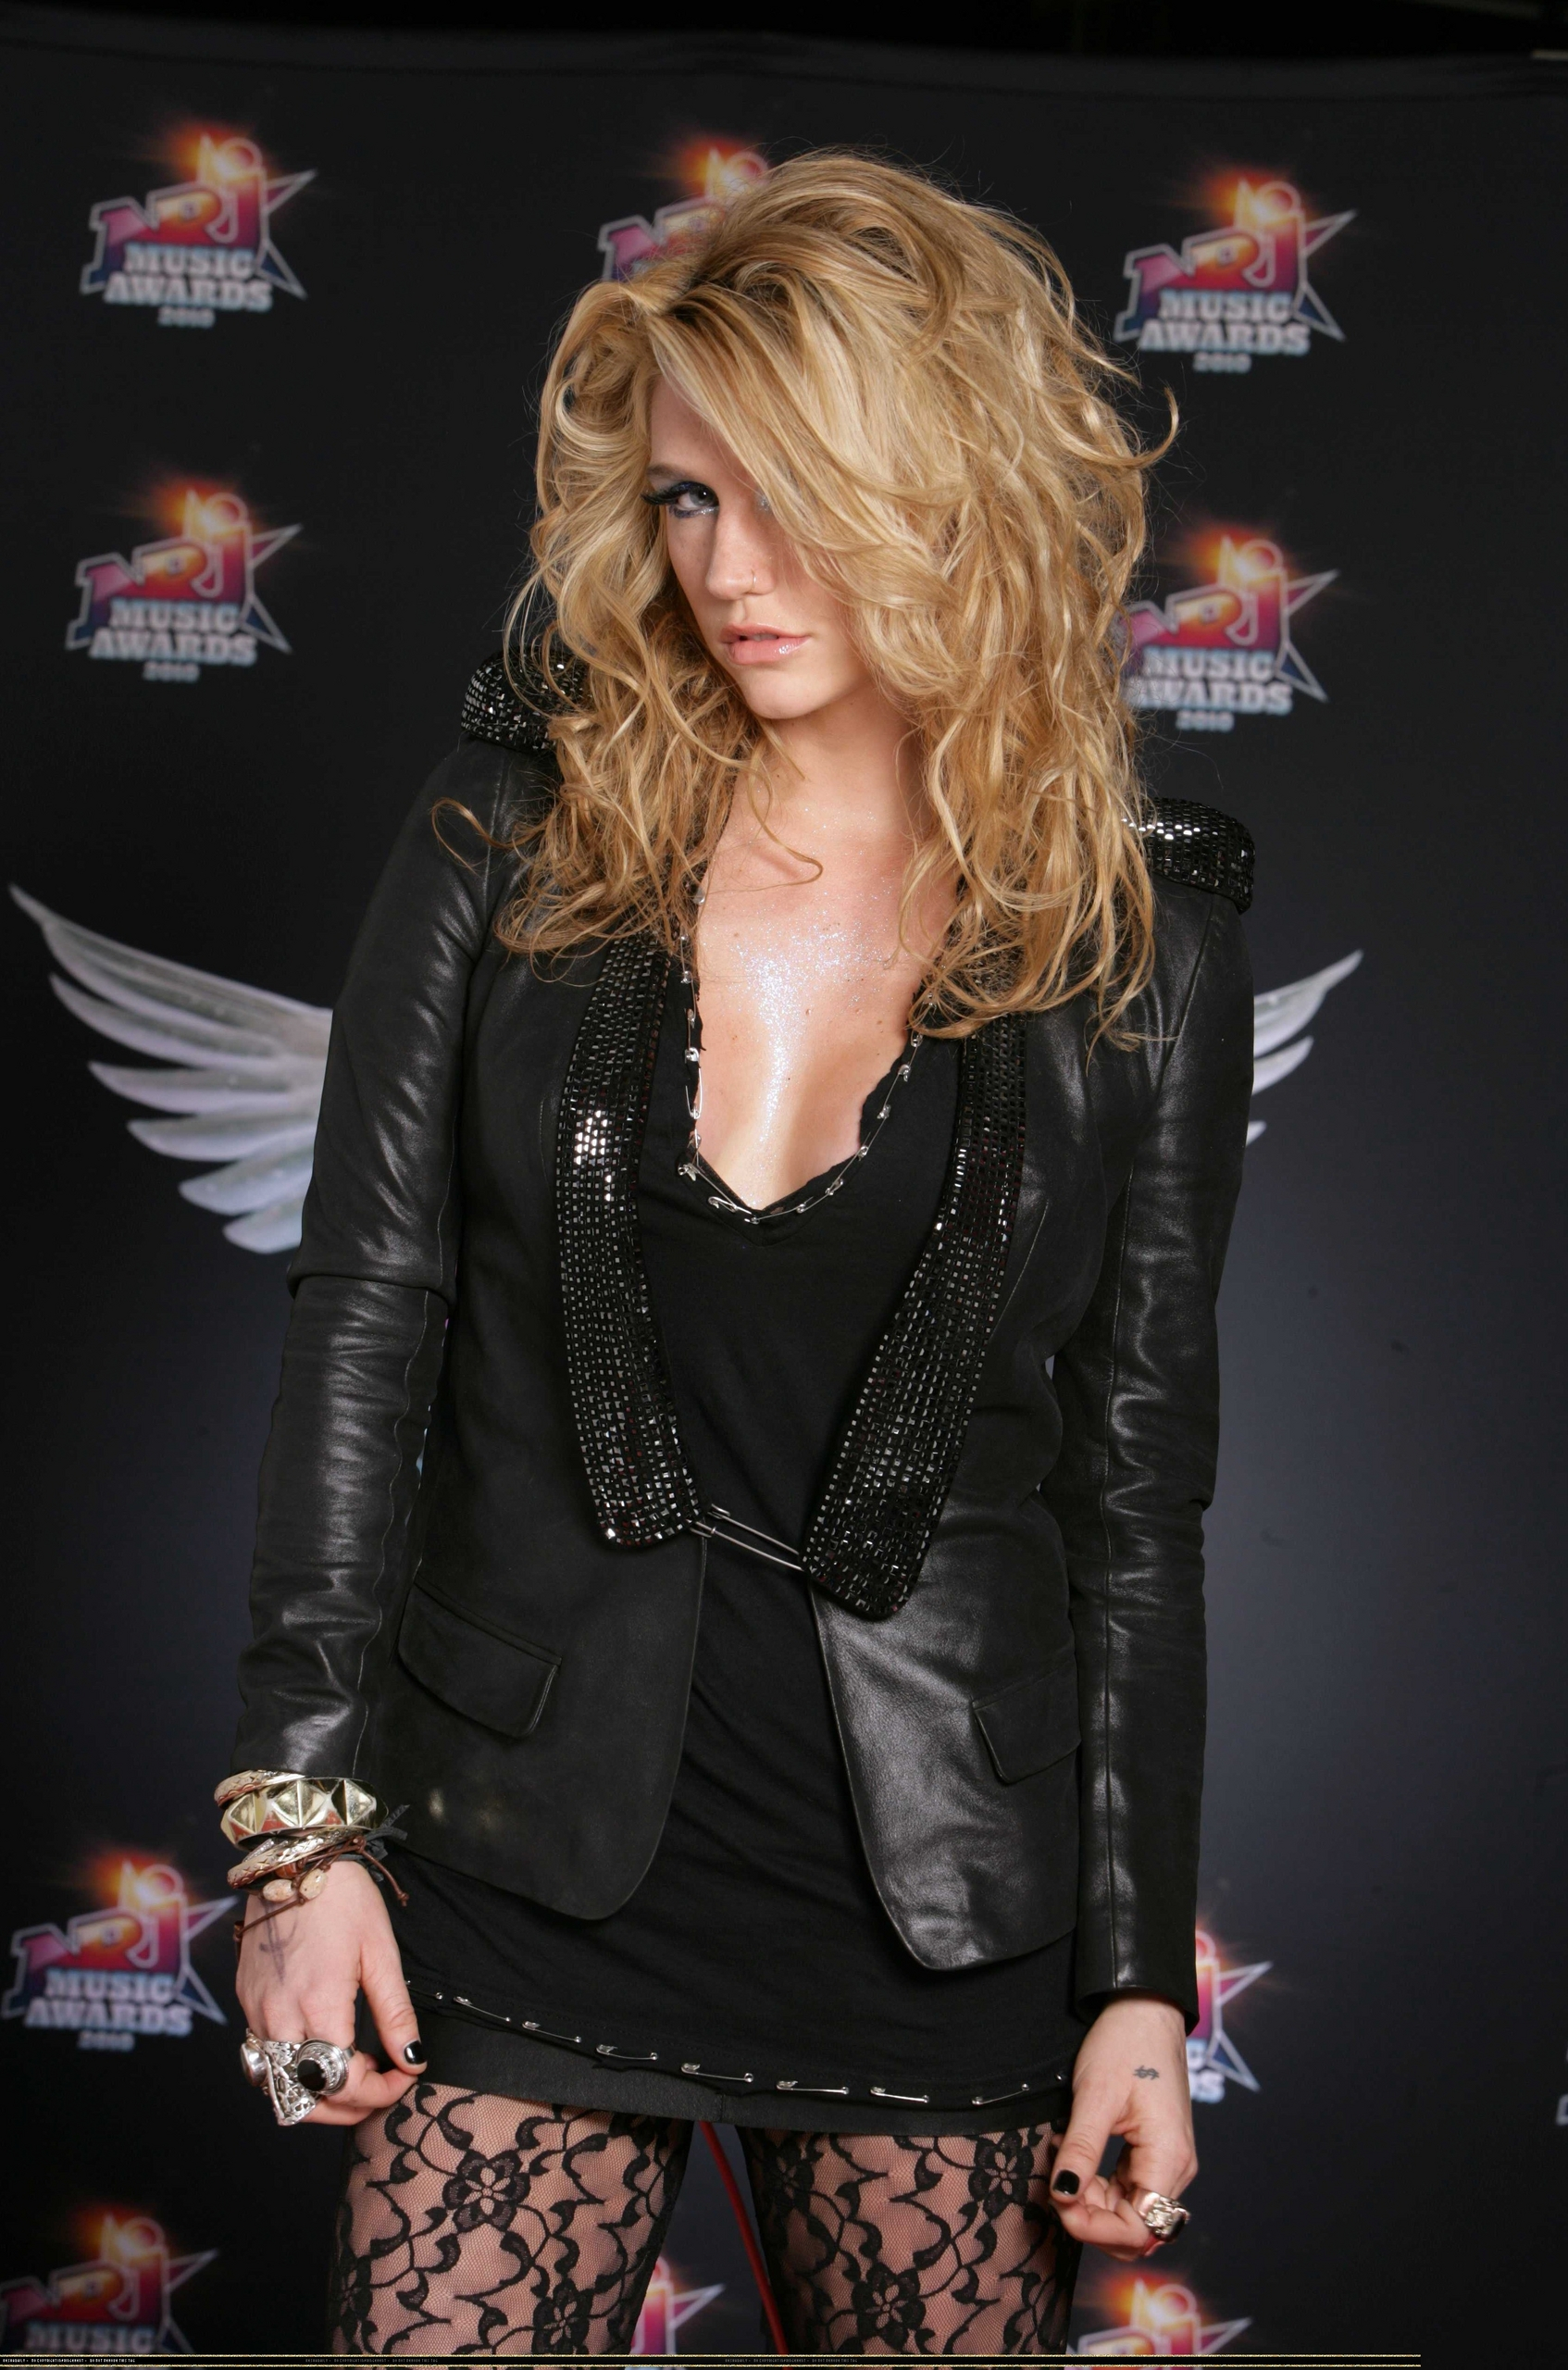 2010 NRJ musik Awards Photocall *HQ*